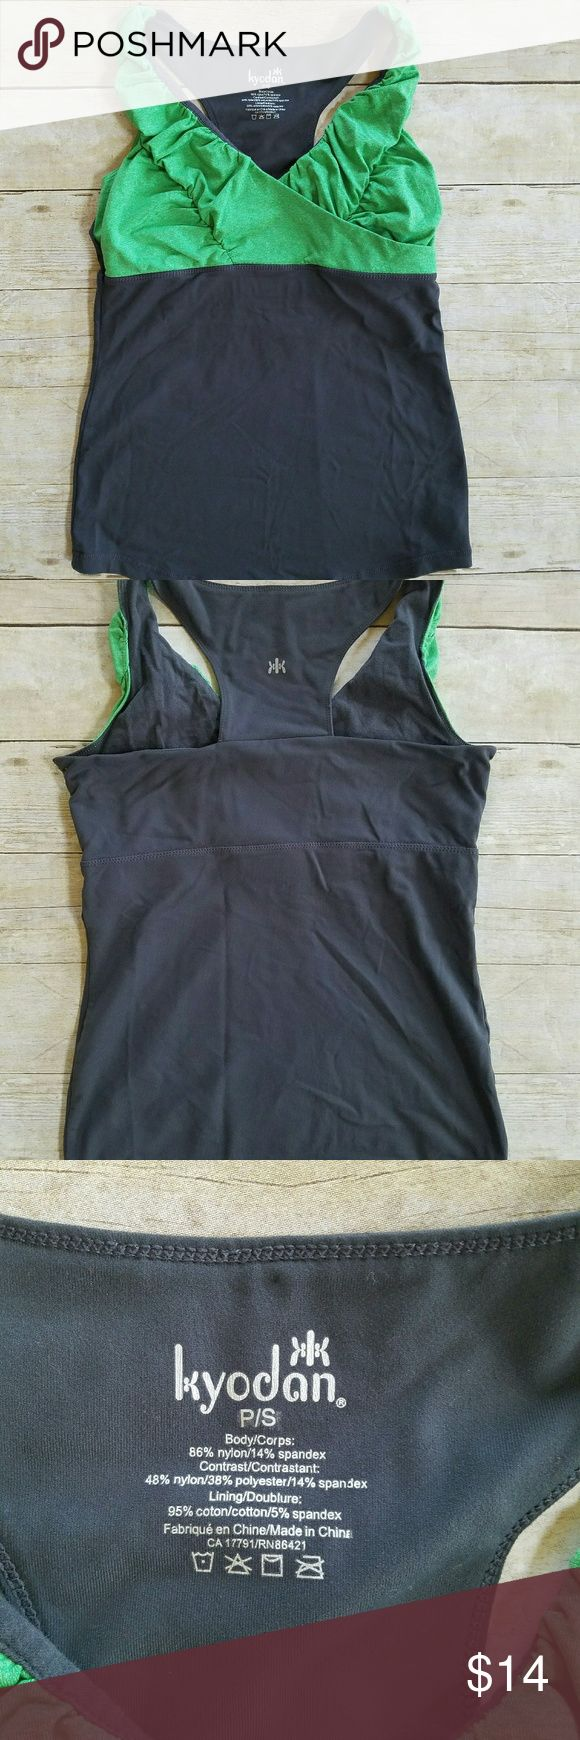 Kyodan green and gray athletic tank top Like new condition, no flaws Kyodan Tops Tank Tops